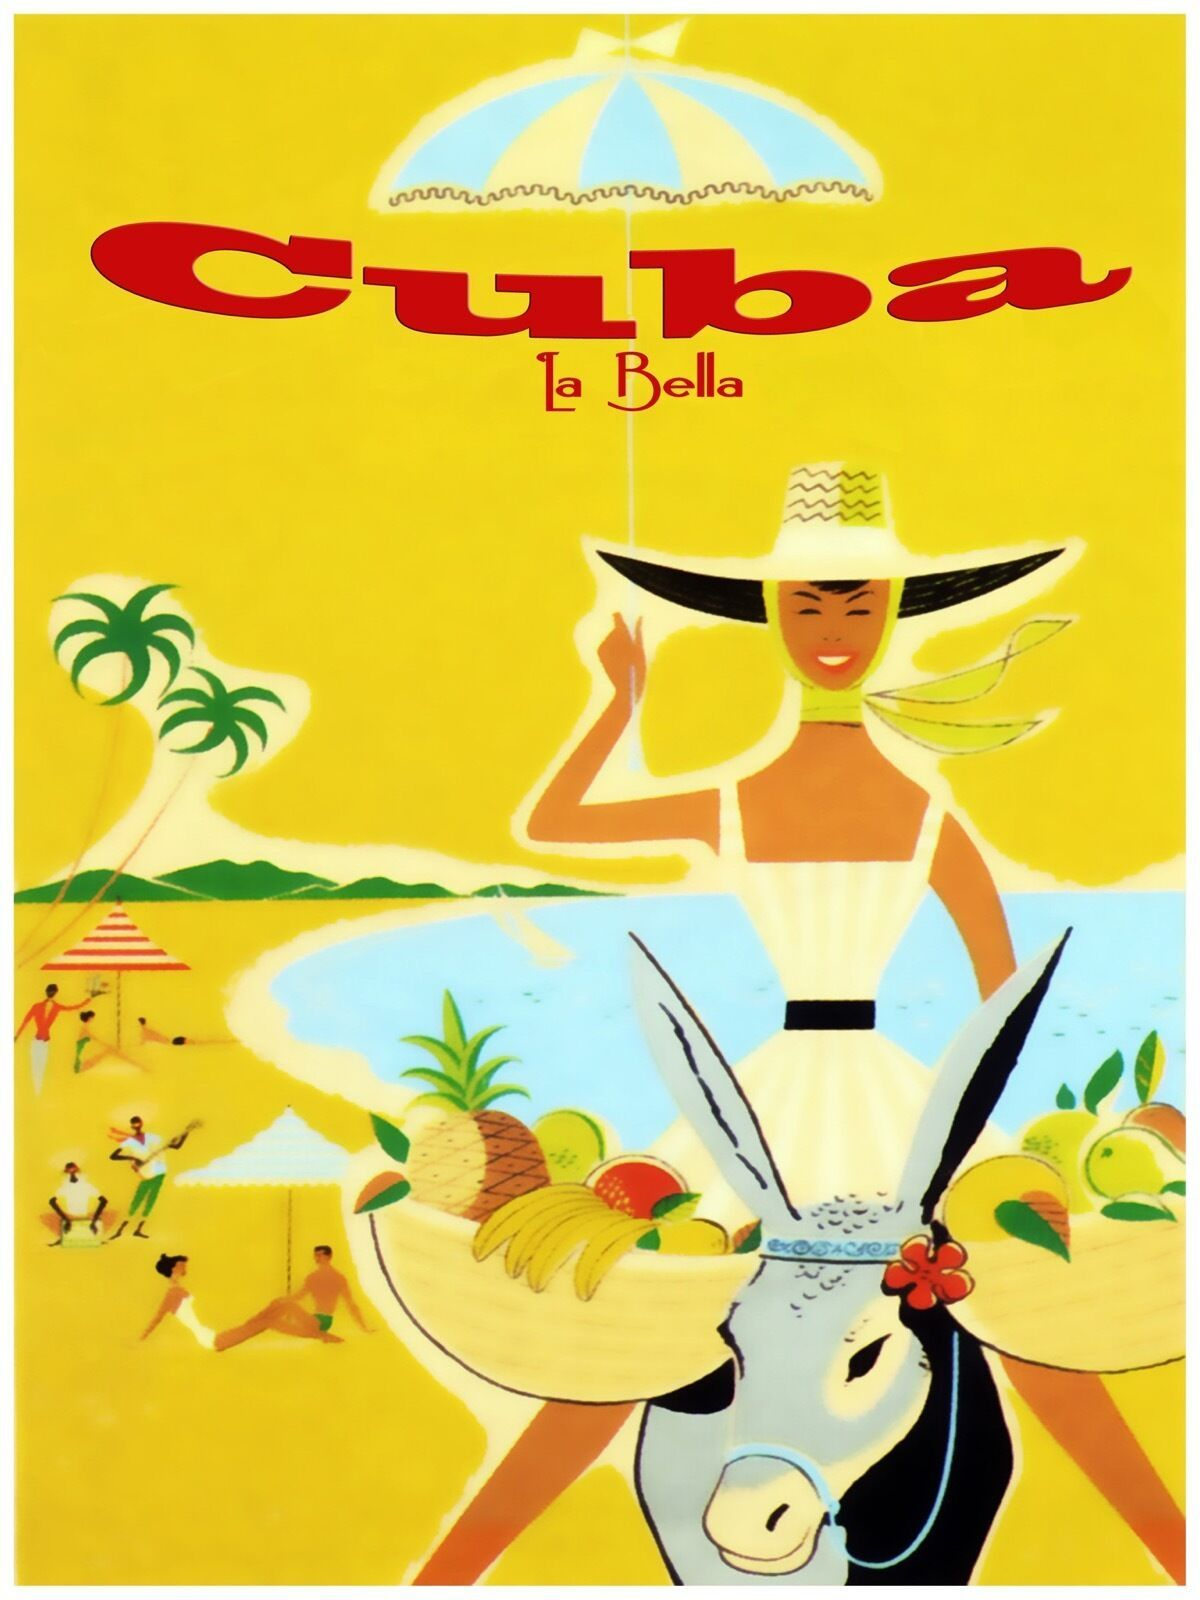 Primary image for Decorative Poster.Interior wall art design.Cuba La Bella.Travel afiche.3939